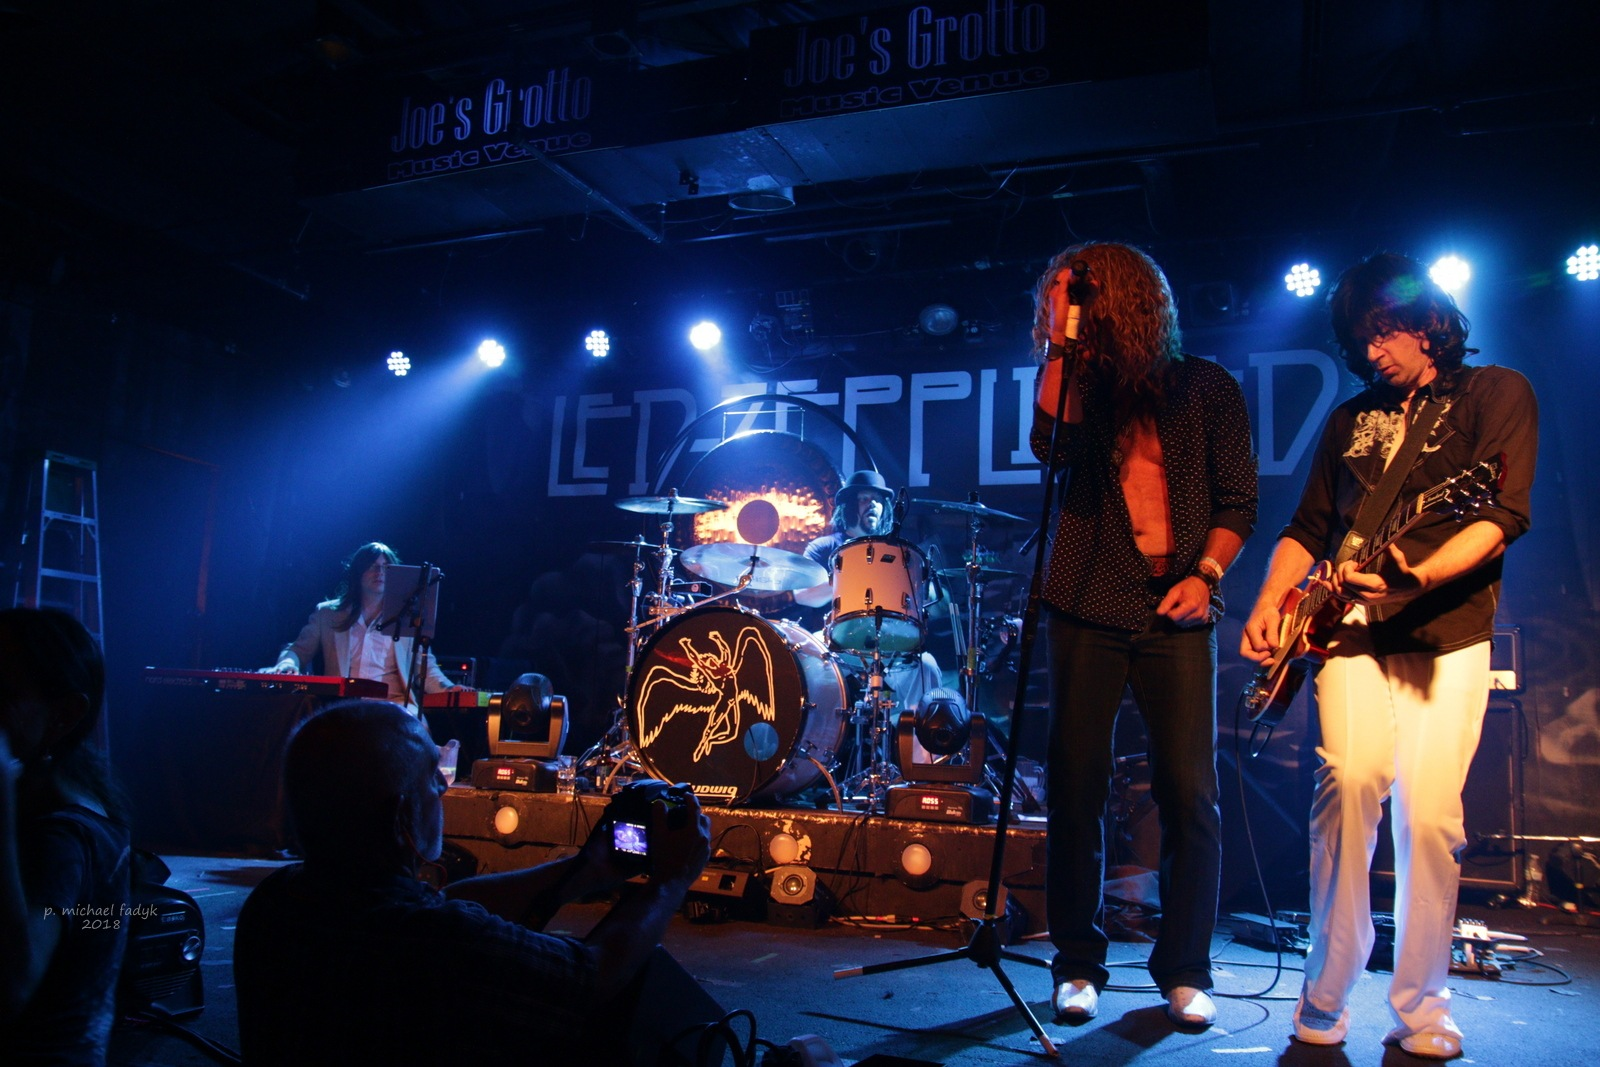 led zeppelin tribte band by P. Michael Fadyk